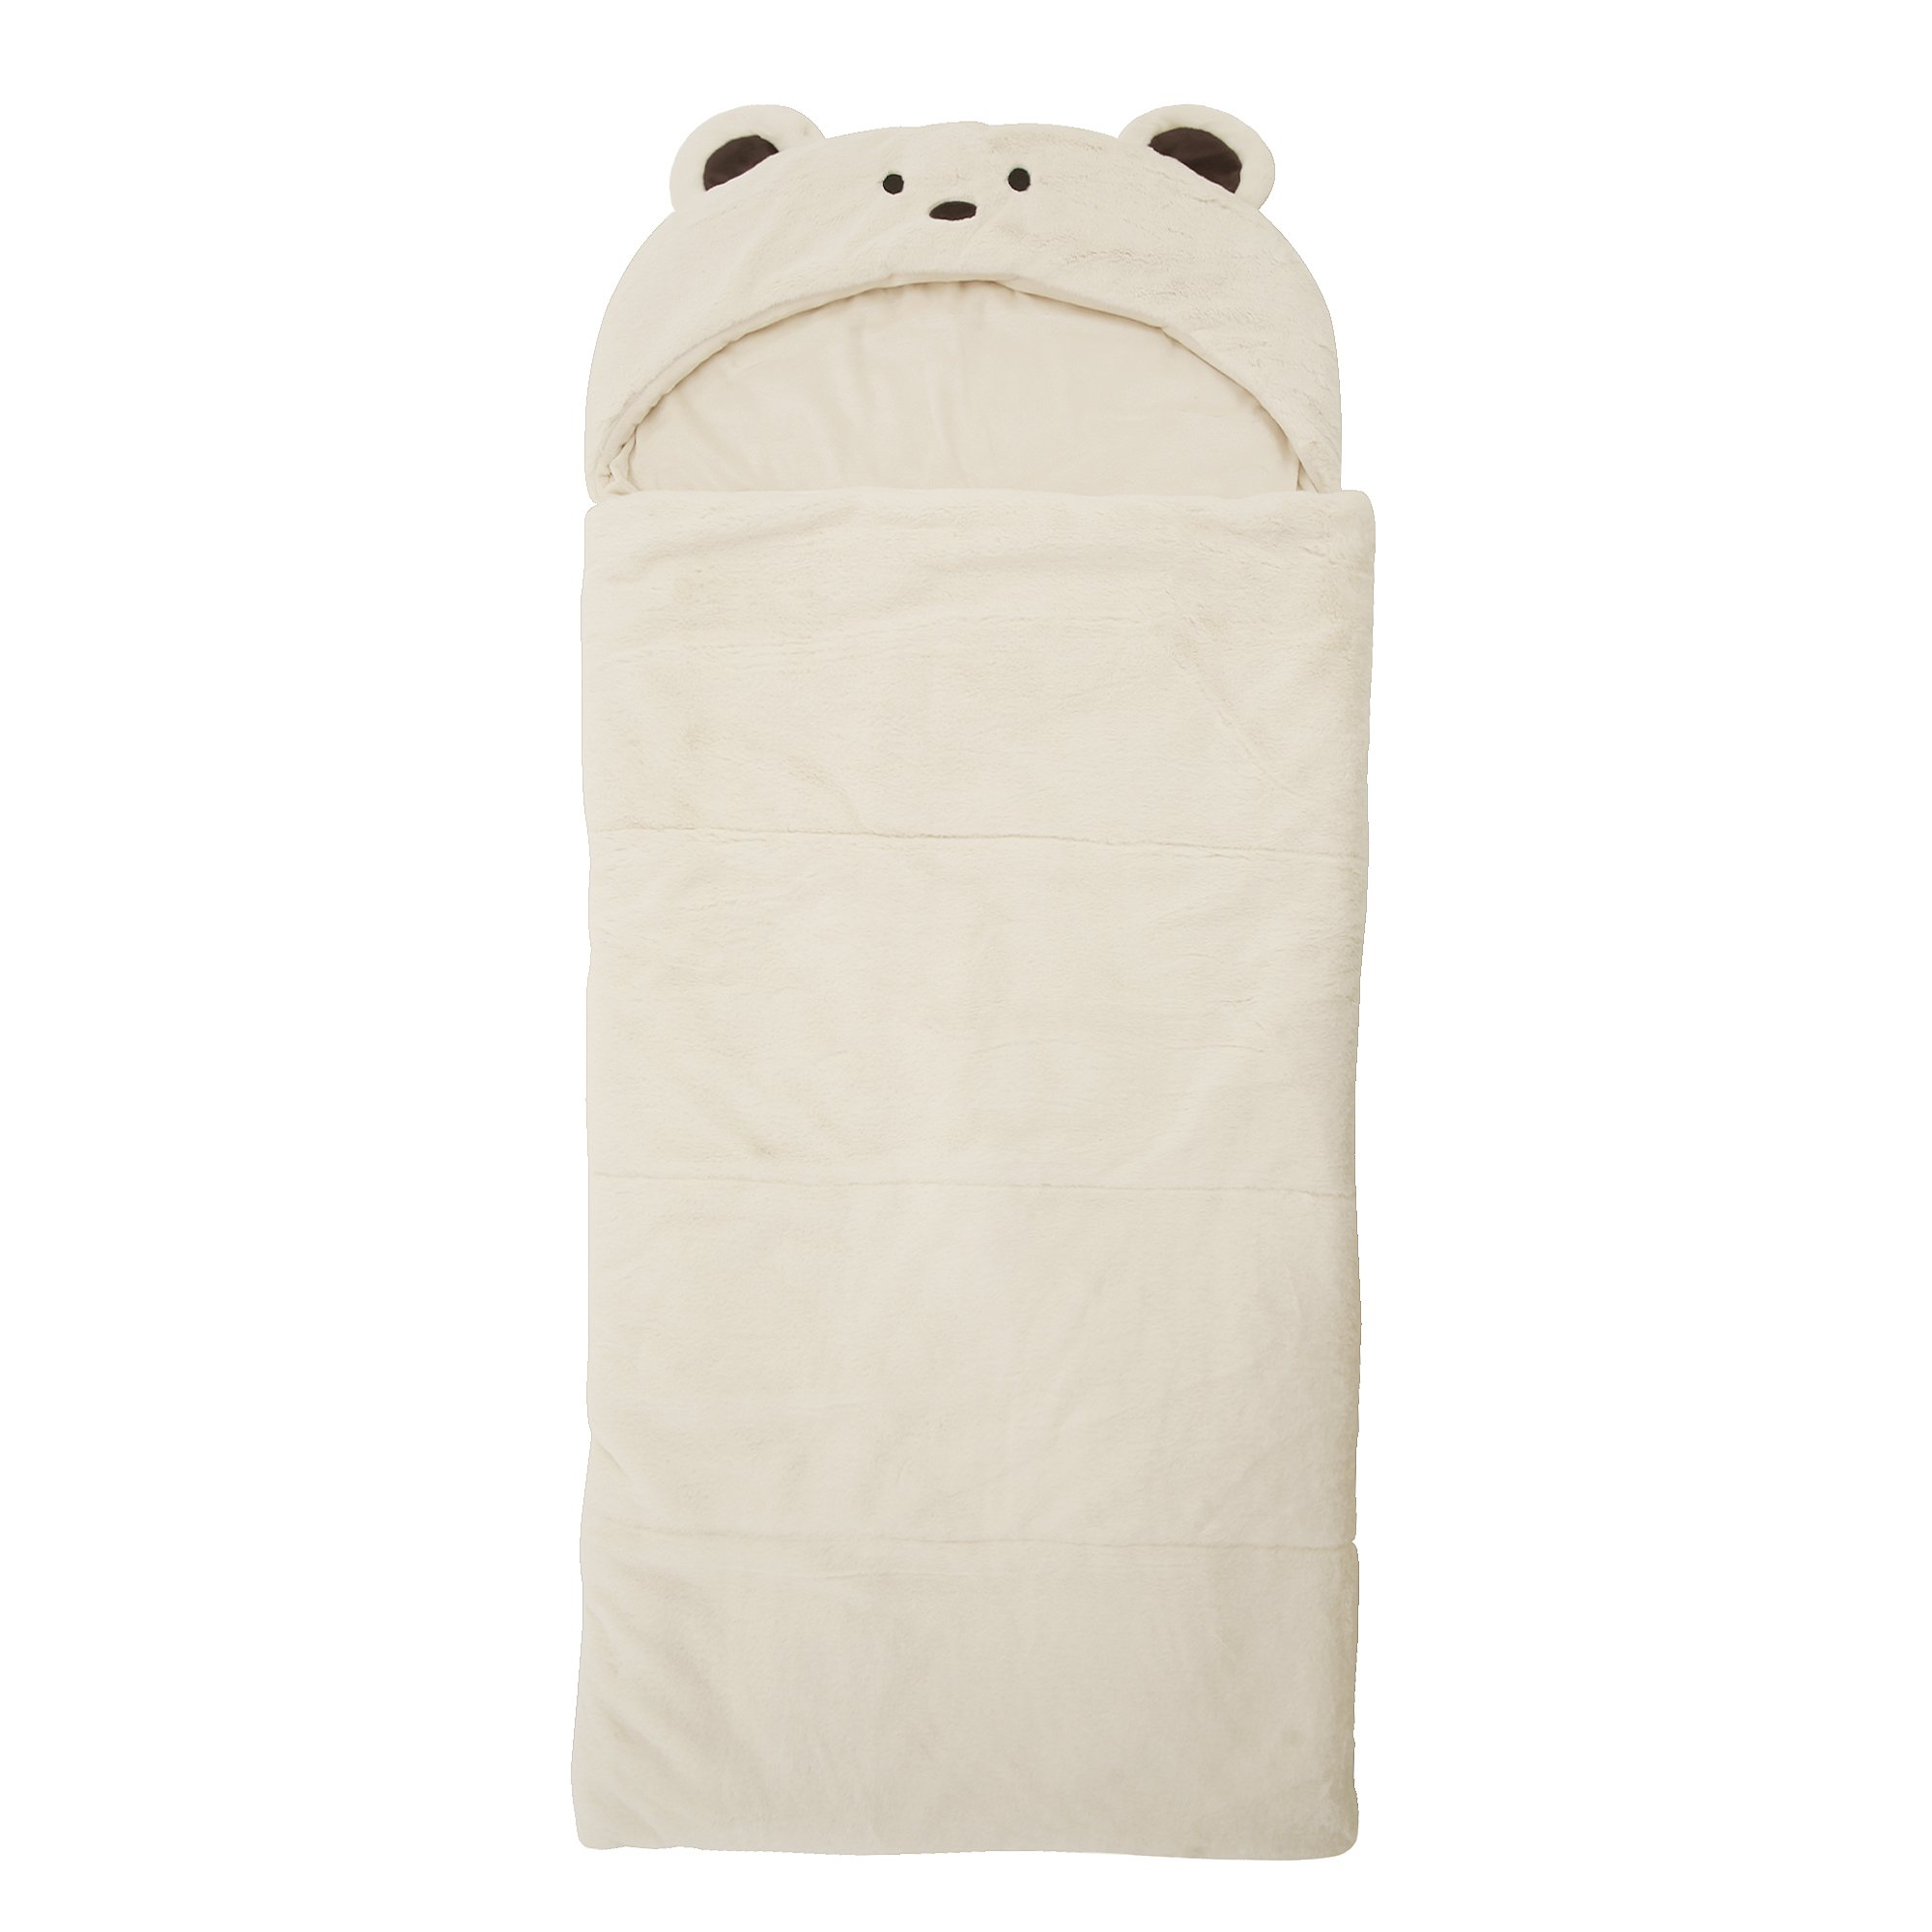 Best Home Fashion Plush Faux Fur Hooded Bear Animal Sleeping Bag - Cream - 27''W x 59''L - (1 Sleeping Bag)